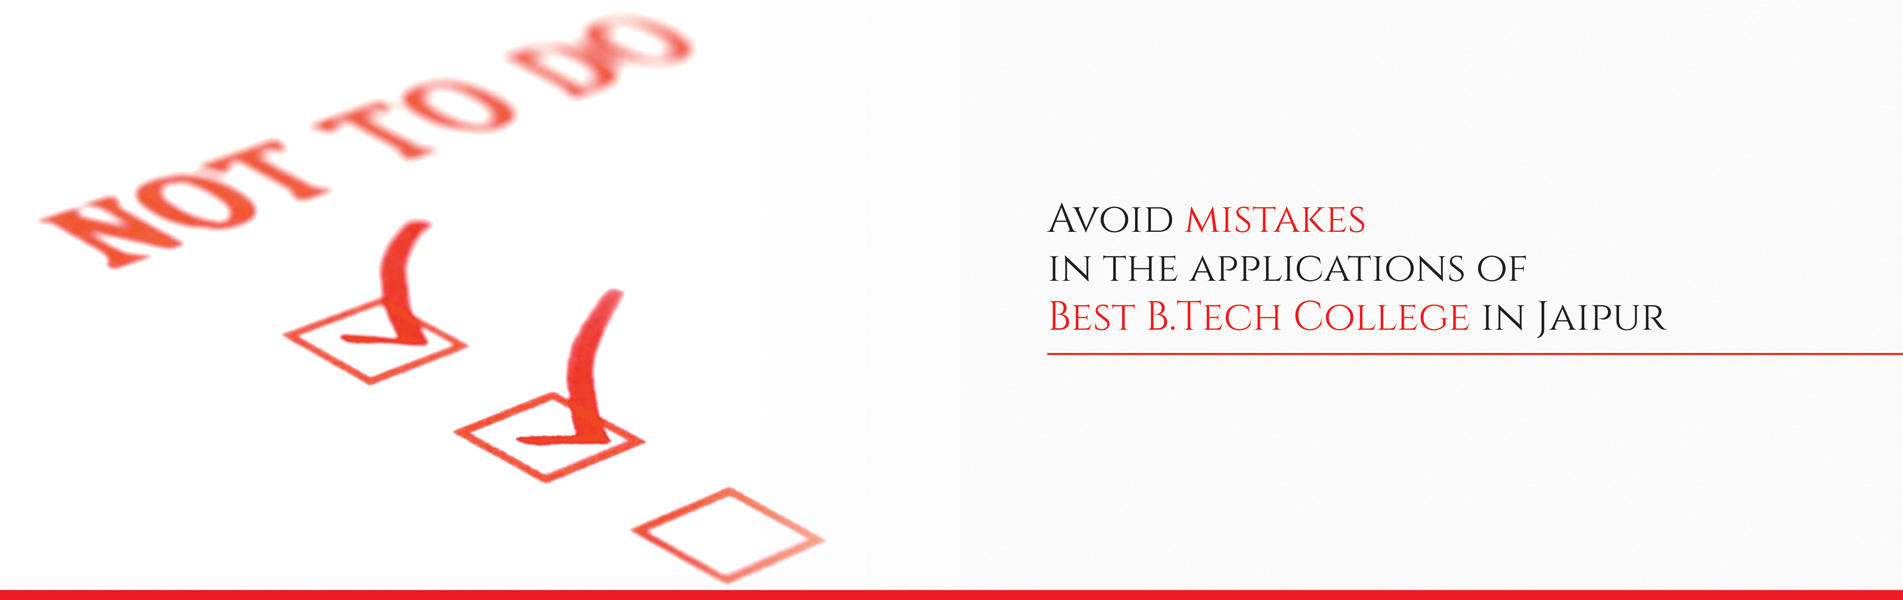 Avoid-mistakes-in-the-applications-of-Best-B-Tech-College-in-Jaipur